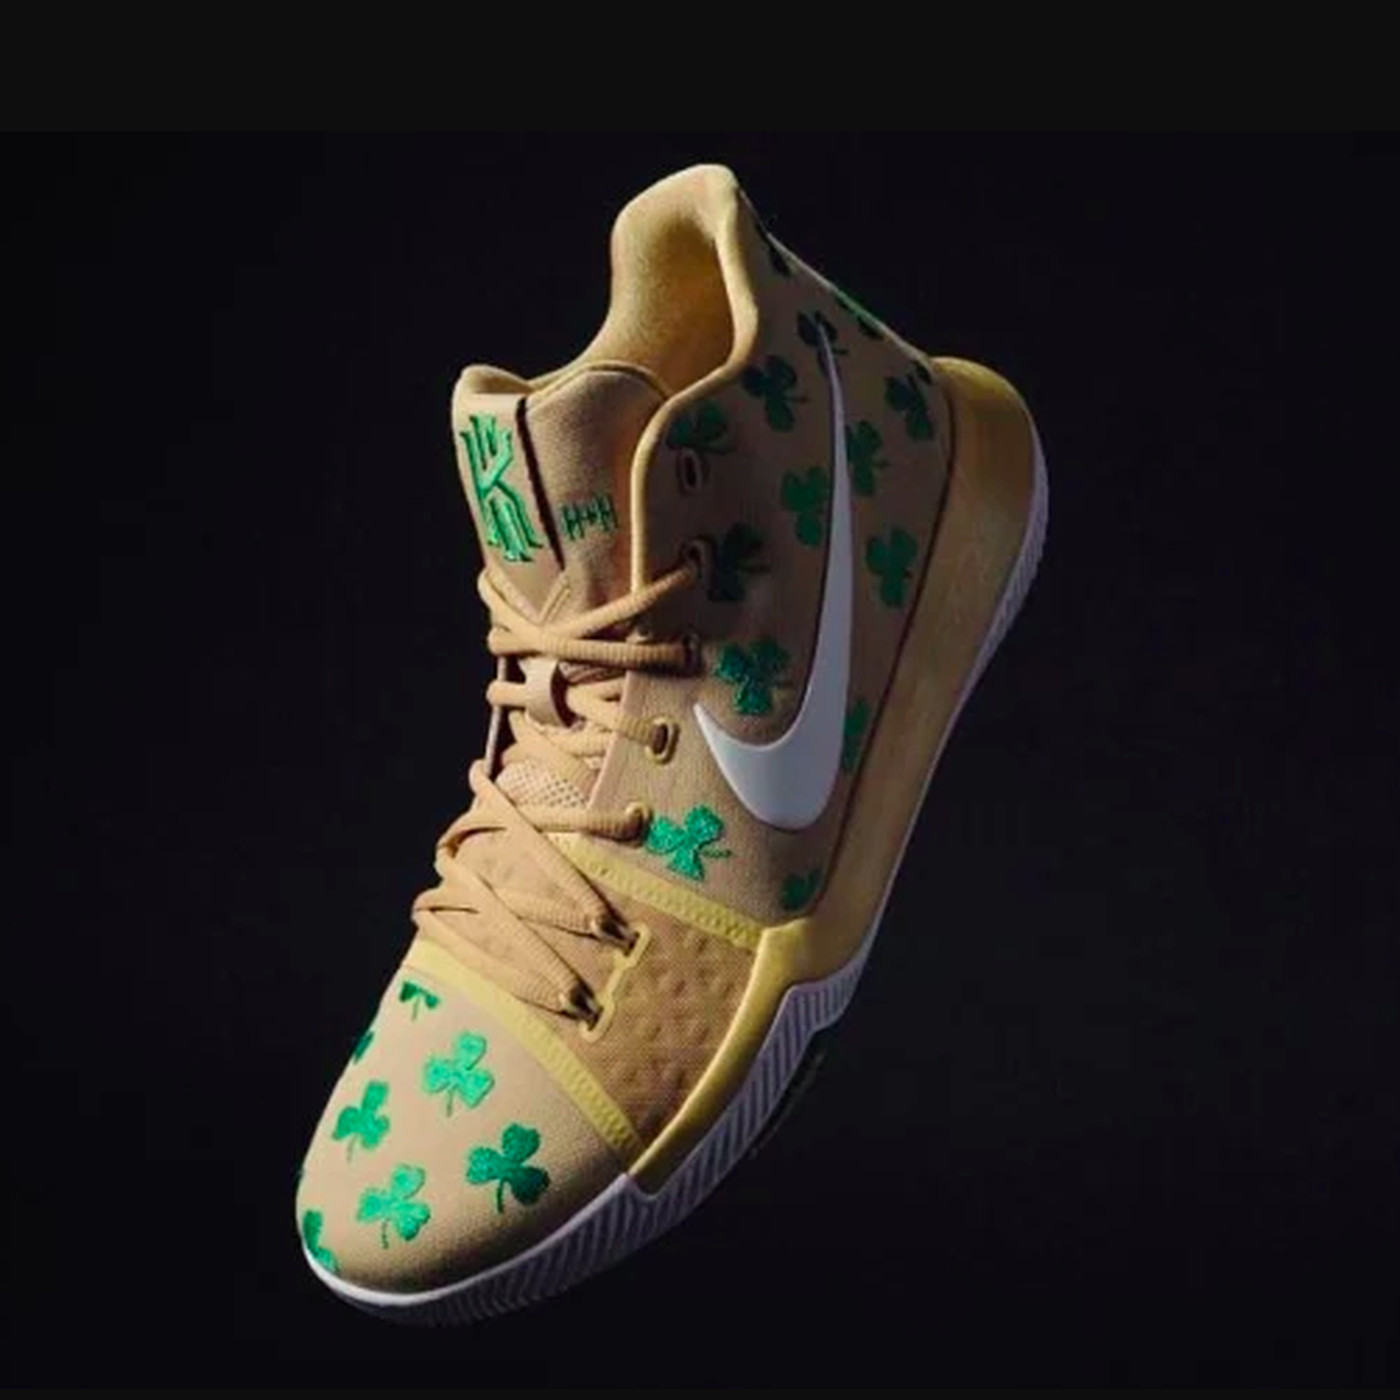 new product 6546d c22f8 Kyrie Irving's newest Celtics' themed shoe are ... different ...